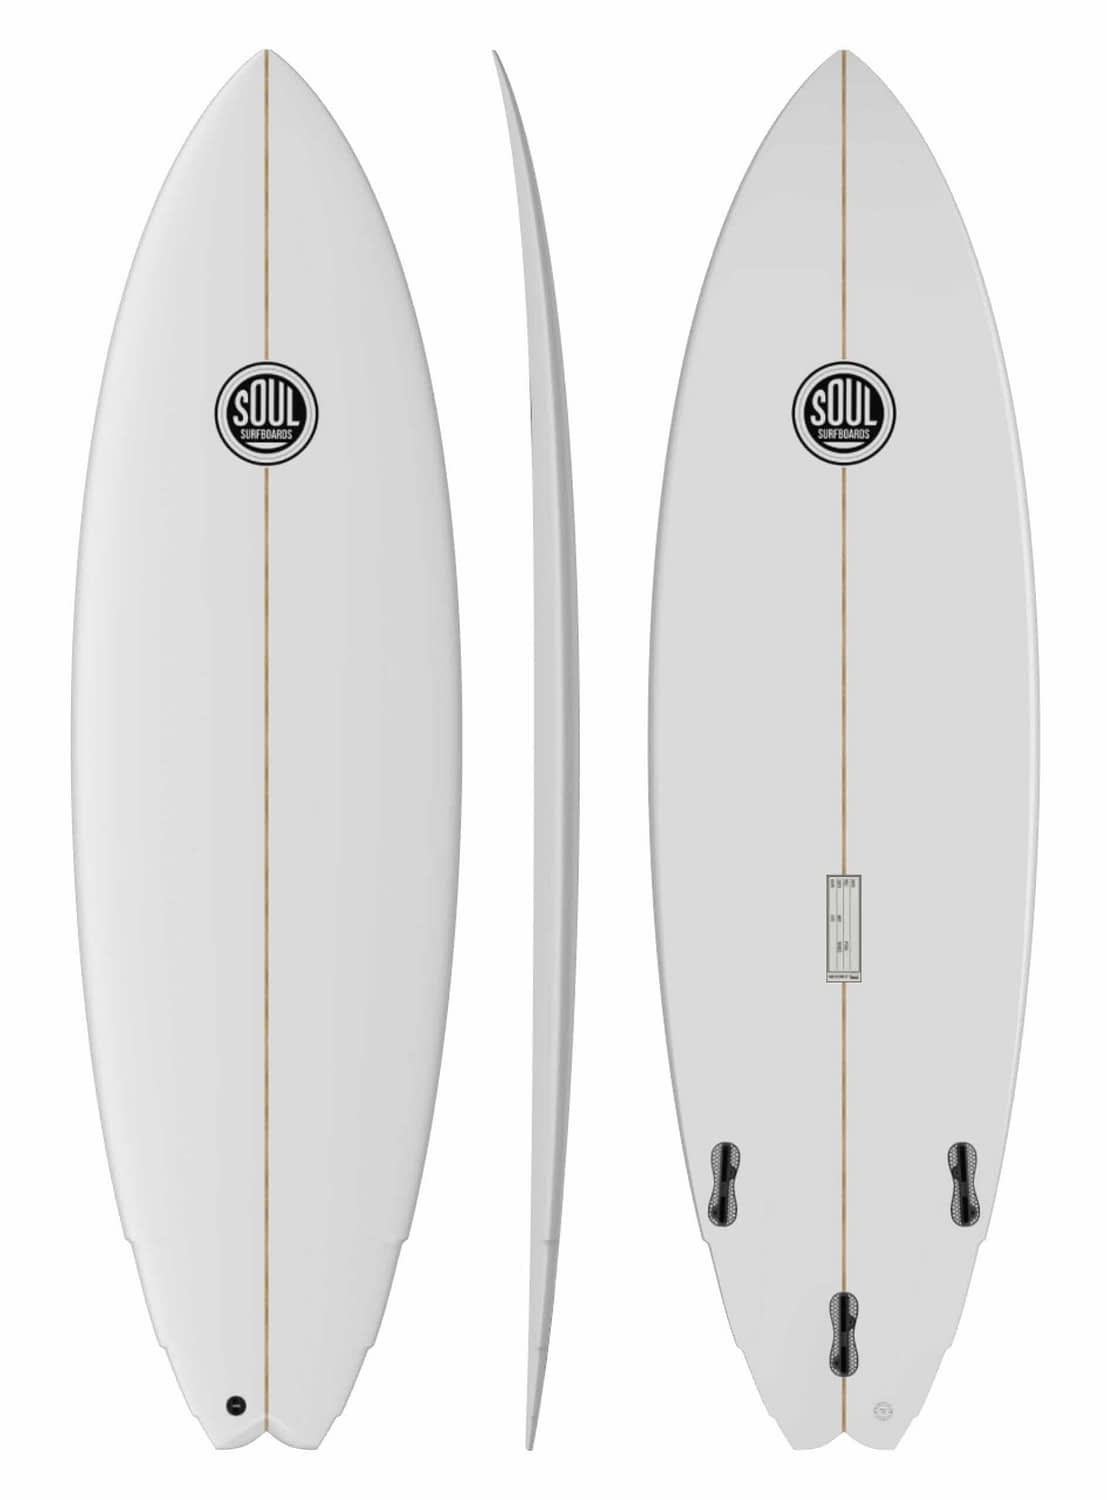 Stumpy Soul Surfboards